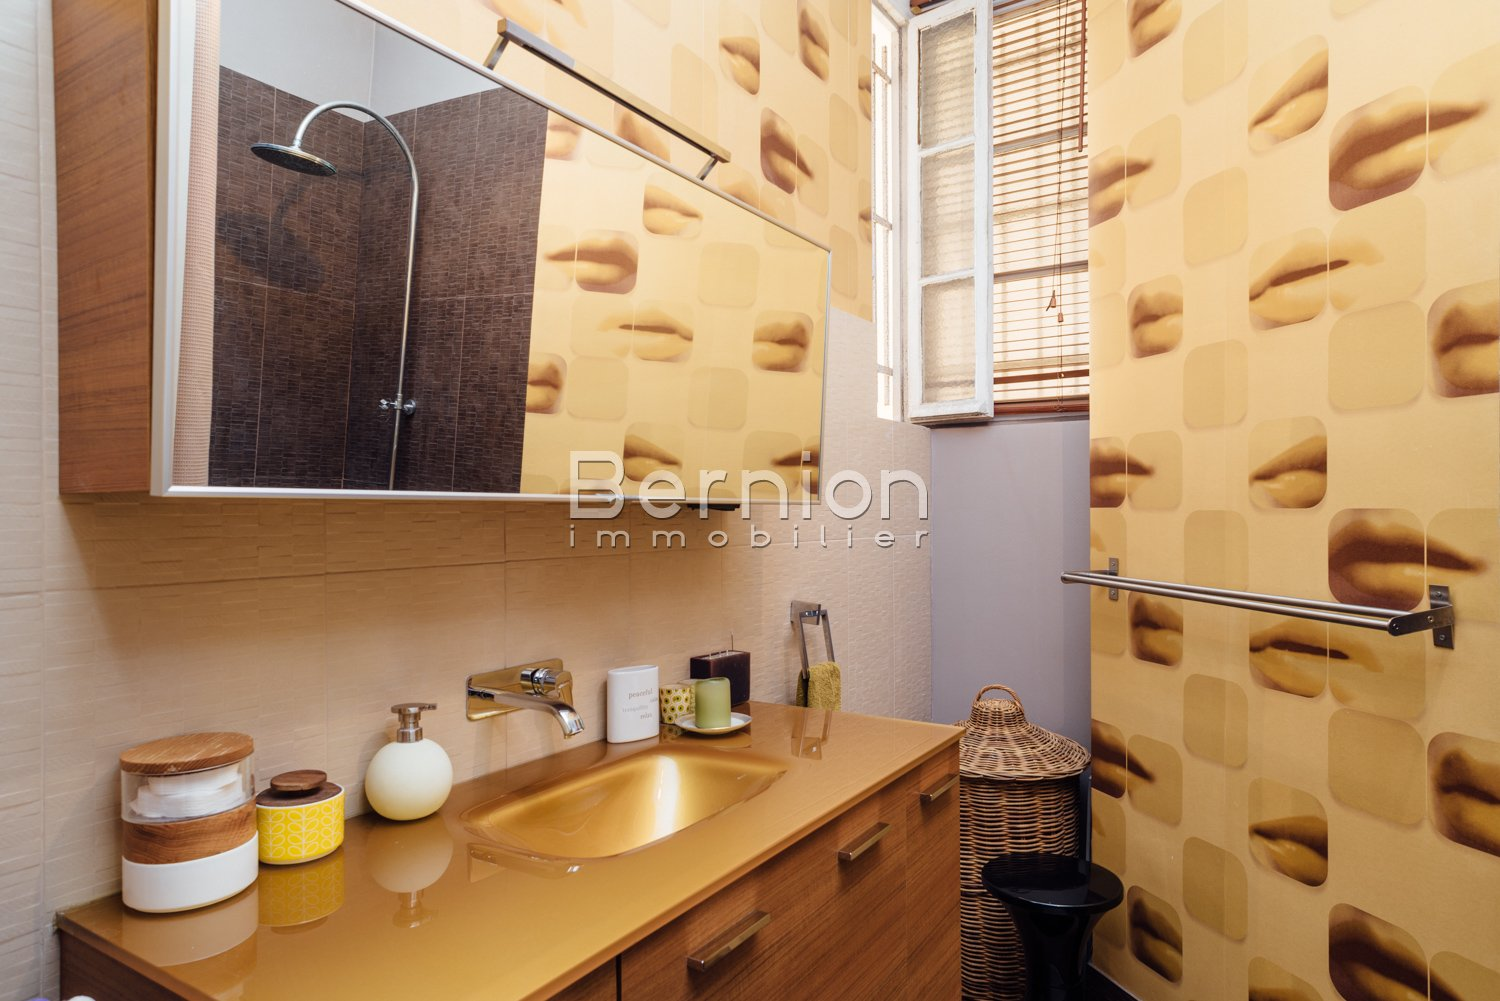 For Sale, Nice City Center Beautiful 72 sqm Apartment with terrace in Art Deco Building / photo 22